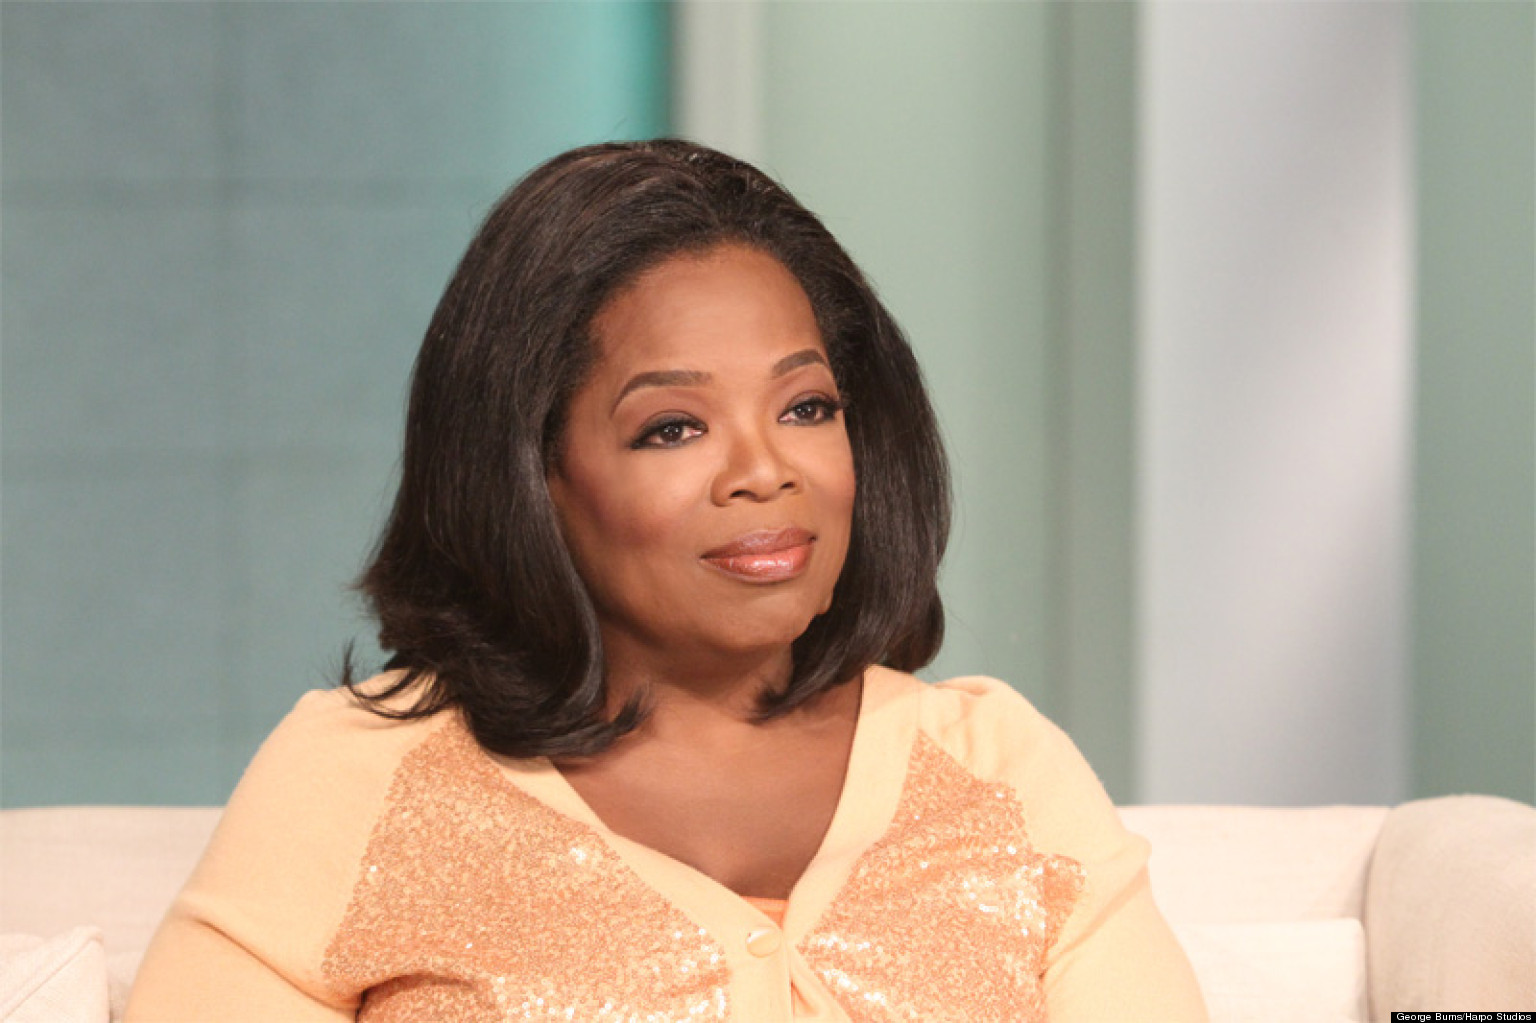 WATCH: Avoid A Big Relationship Mistake With One Of Oprah's Favorite Life Lessons